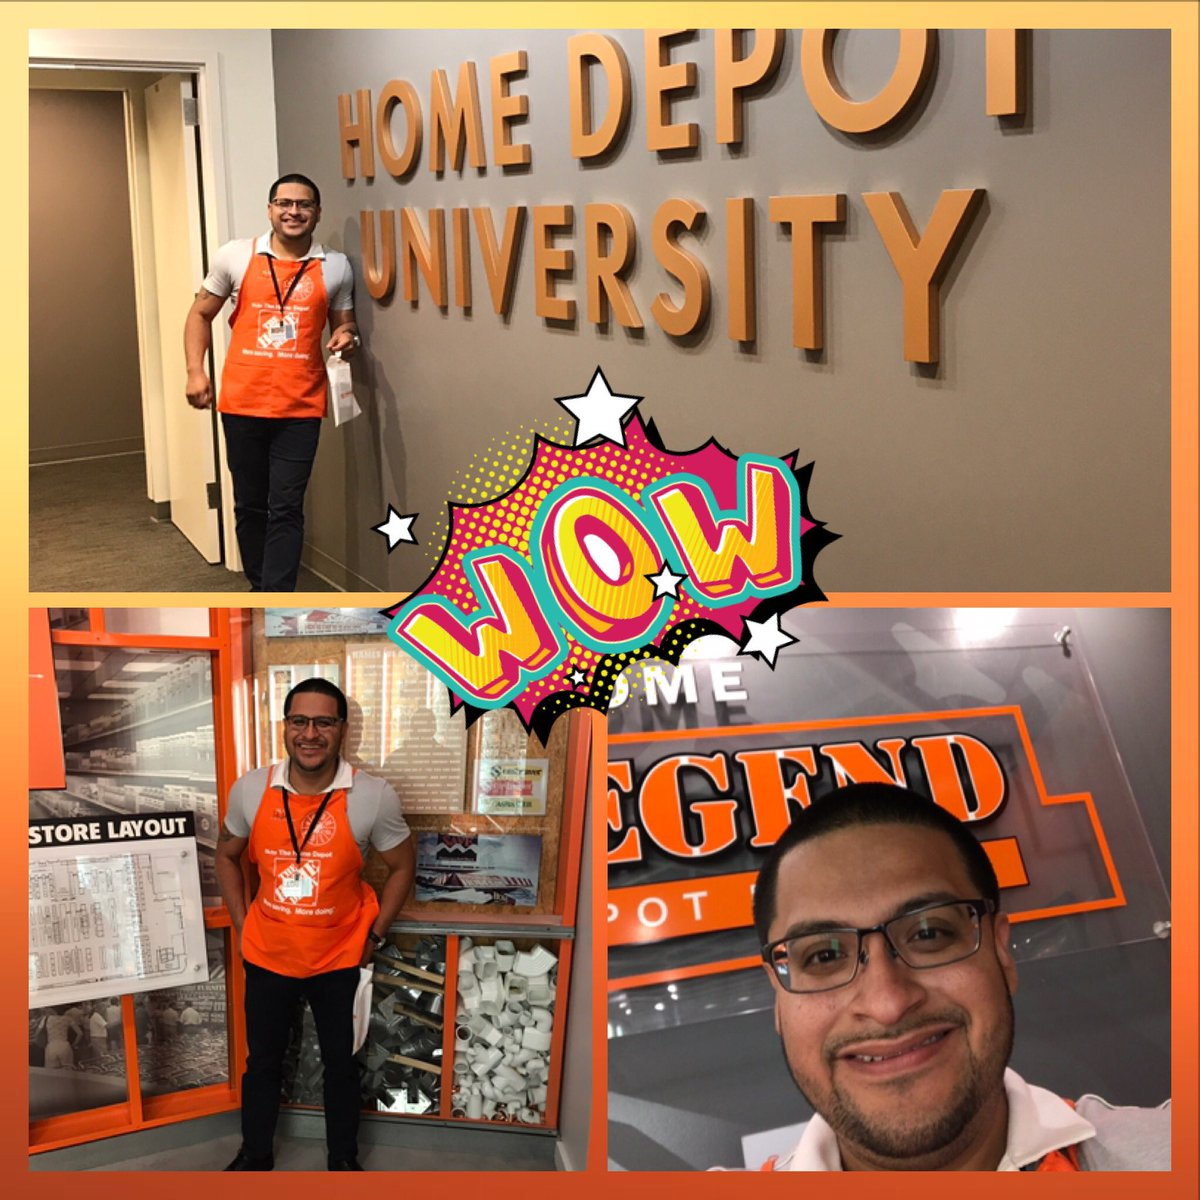 Blessed to be at the Home Depot Store Support Center. Awesome experience#homedepot #teamorange #teamdepot #Atlanta #fun #me <br>http://pic.twitter.com/zIIBIafzng &ndash; bij The Home Depot Store Support Center